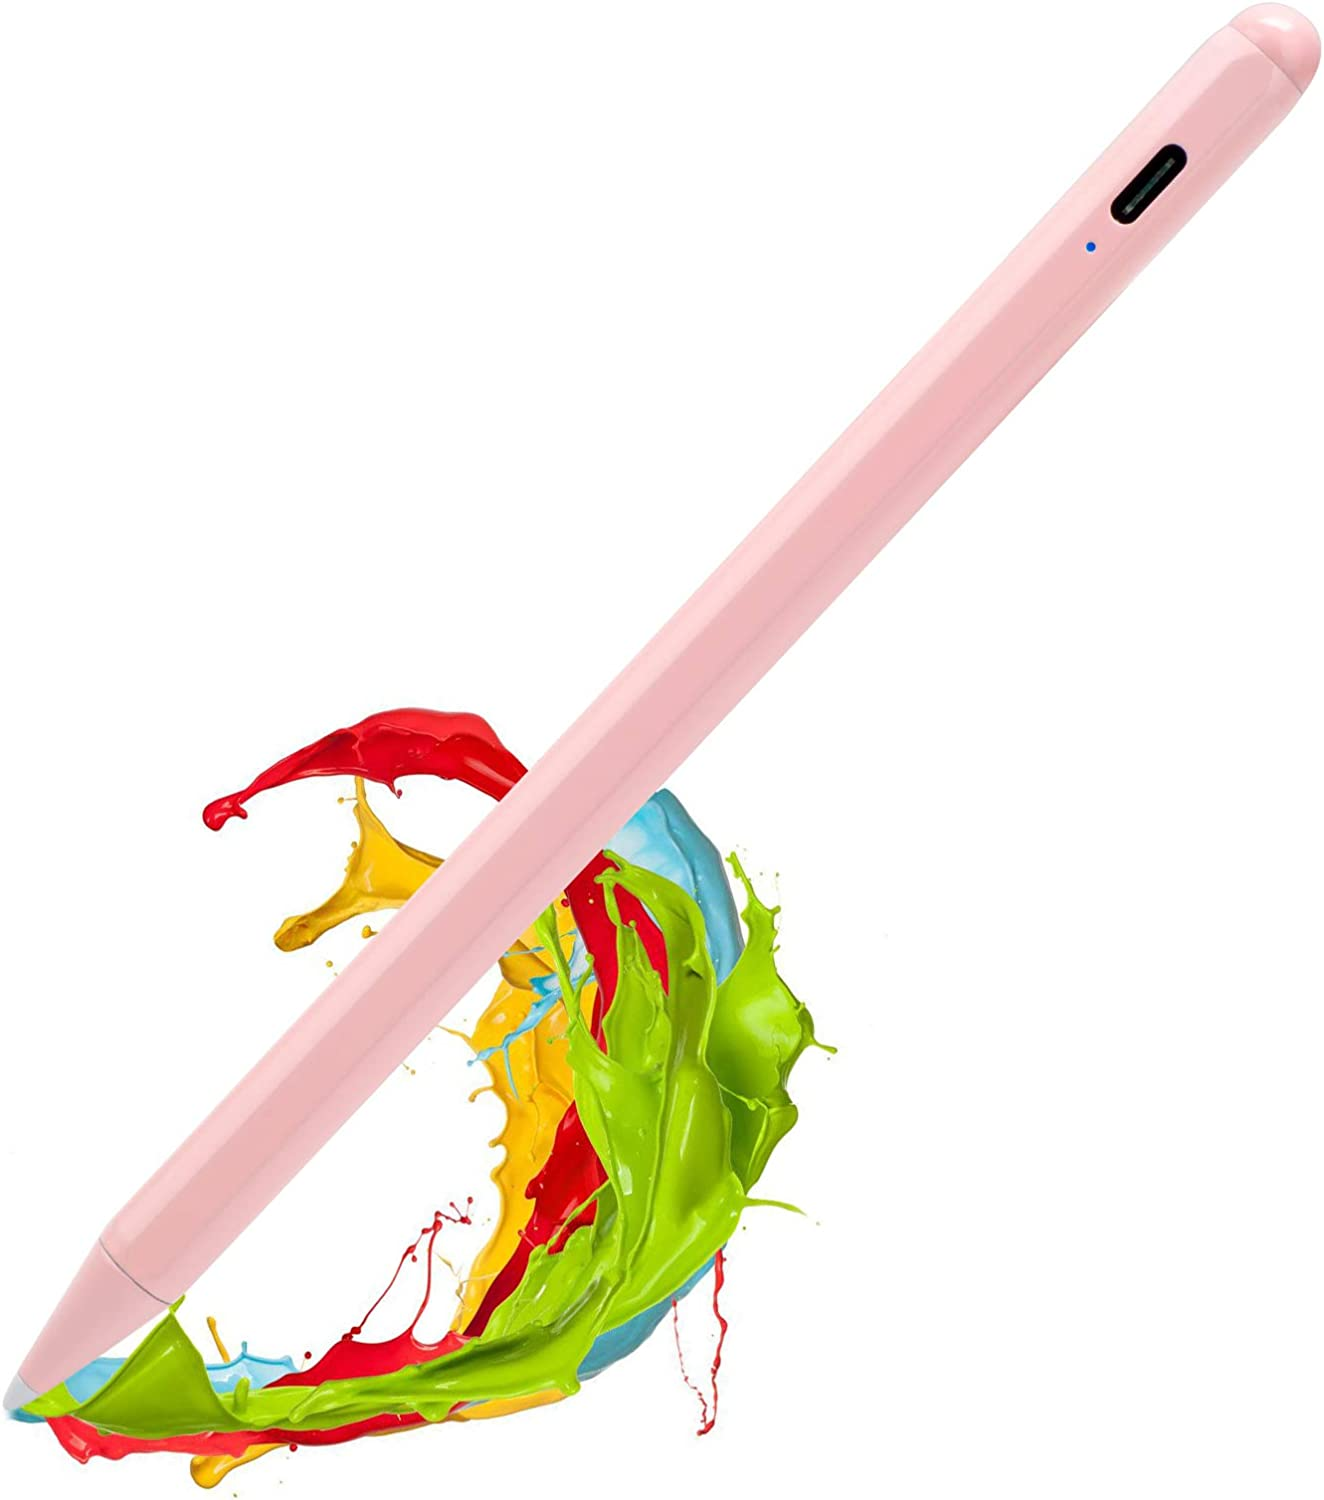 2020 iPad Air 4th Generation 10.9 Inch Stylus Pencil 2nd Generation,,Palm Rejection and Magnetic with 1.2 mm Replaceable POM Tip Active Stylus Pen for Apple iPad Air 4th Gen Pencil,Pink